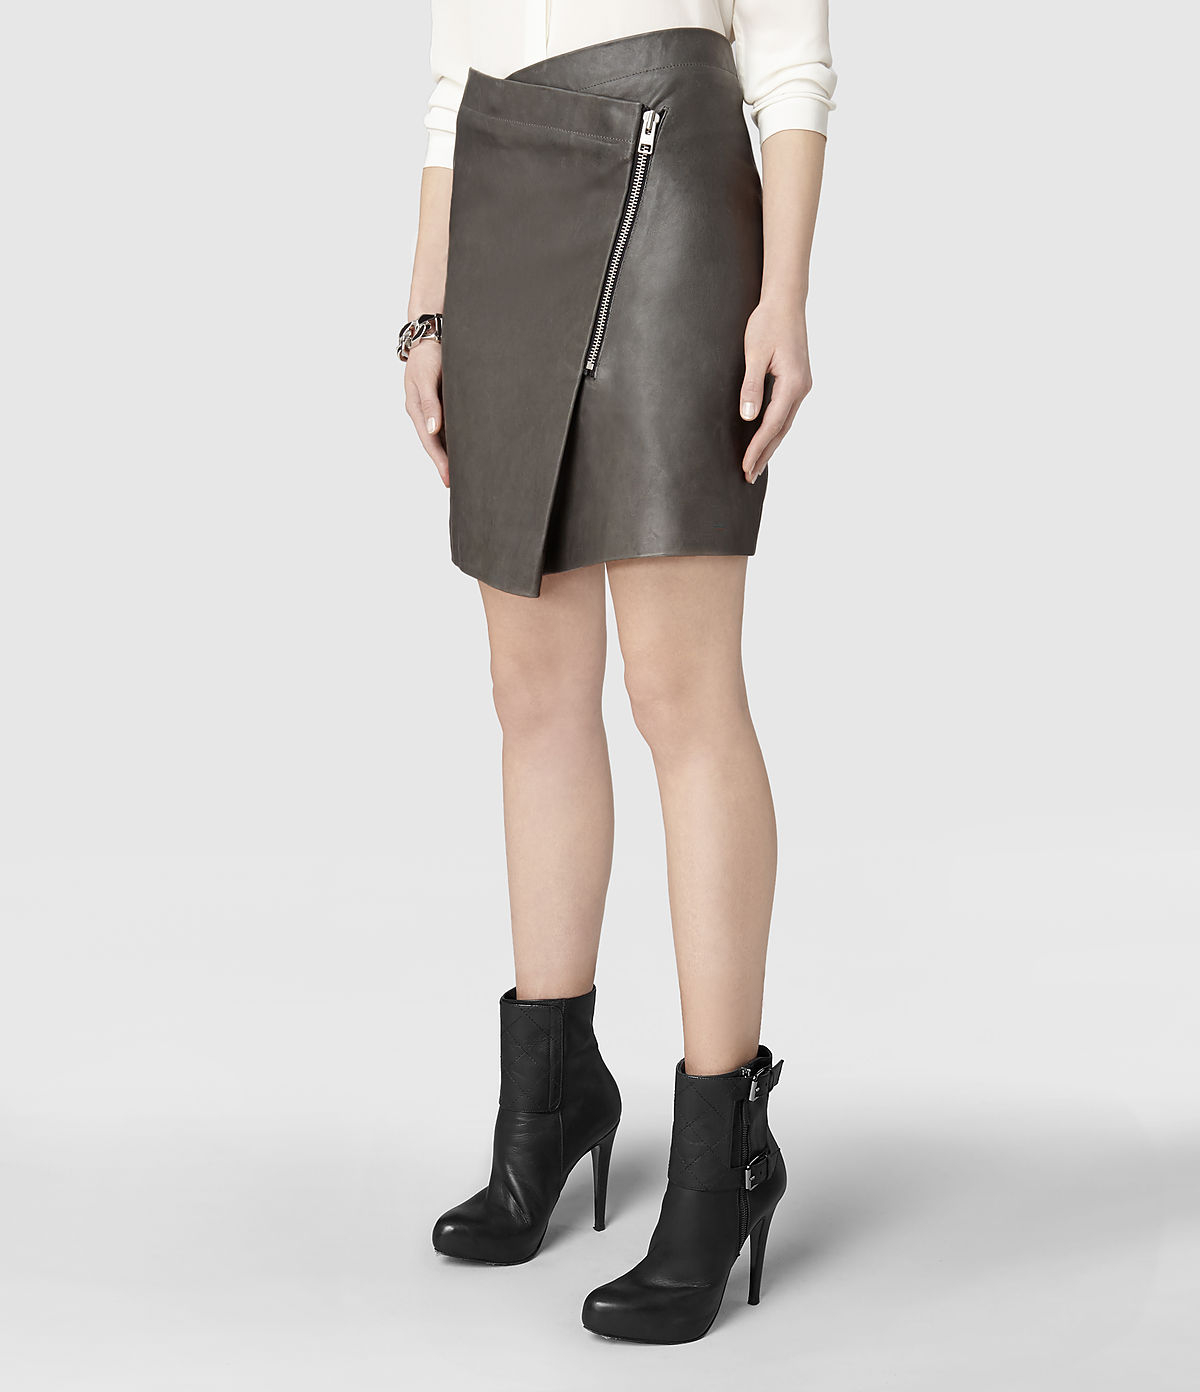 Allsaints Zip Ruther Leather Skirt in Gray | Lyst